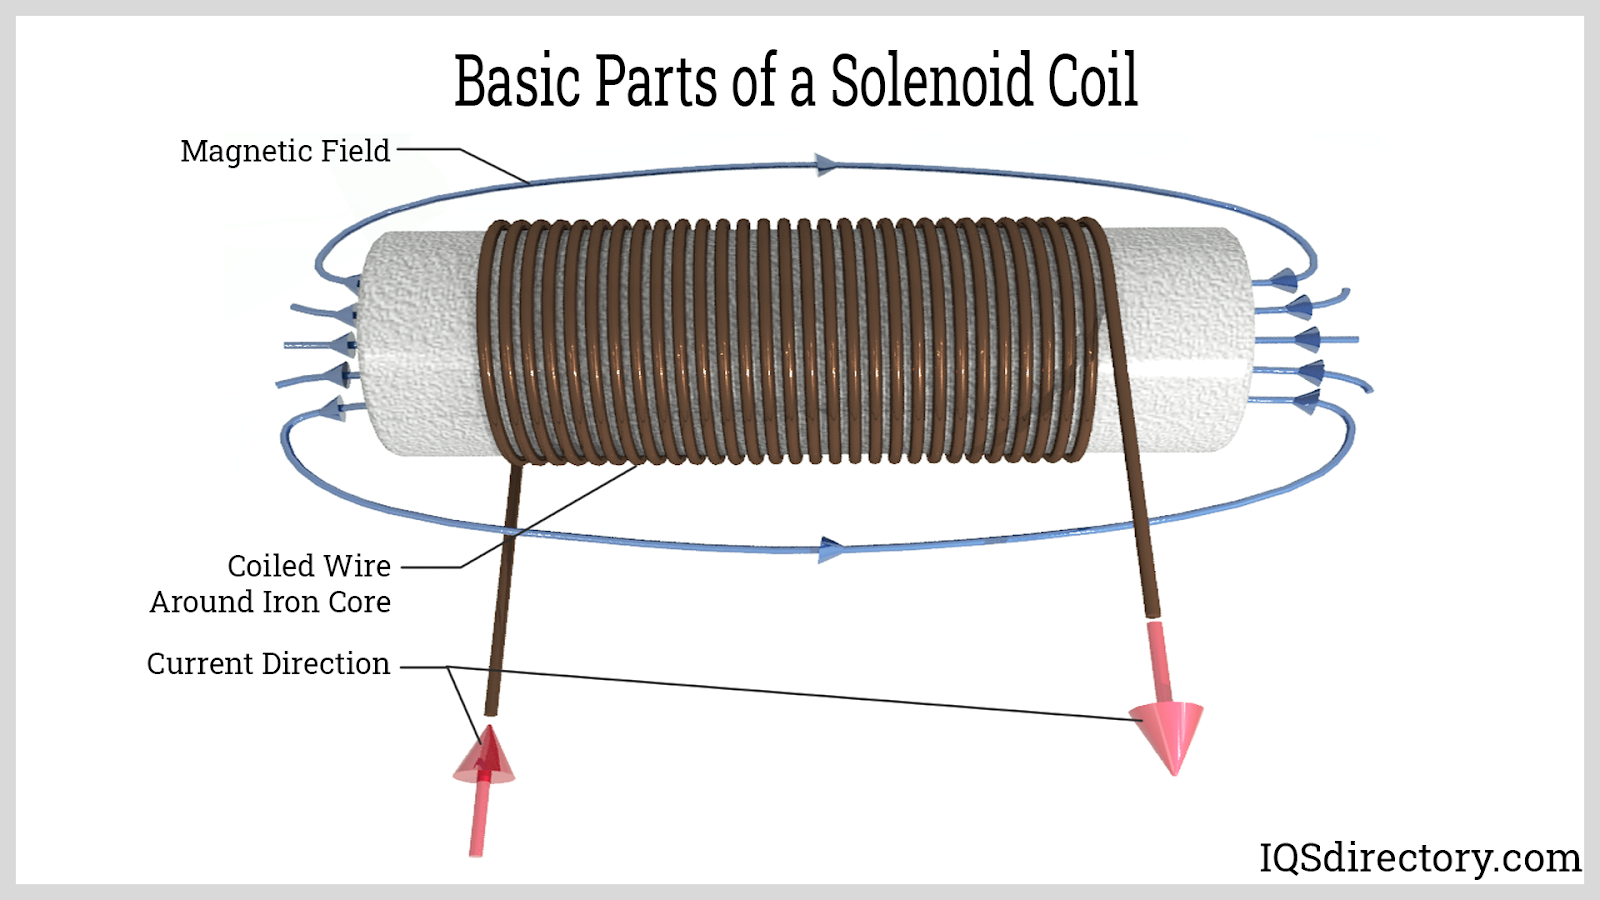 Basic Parts of a Solenoid Coil